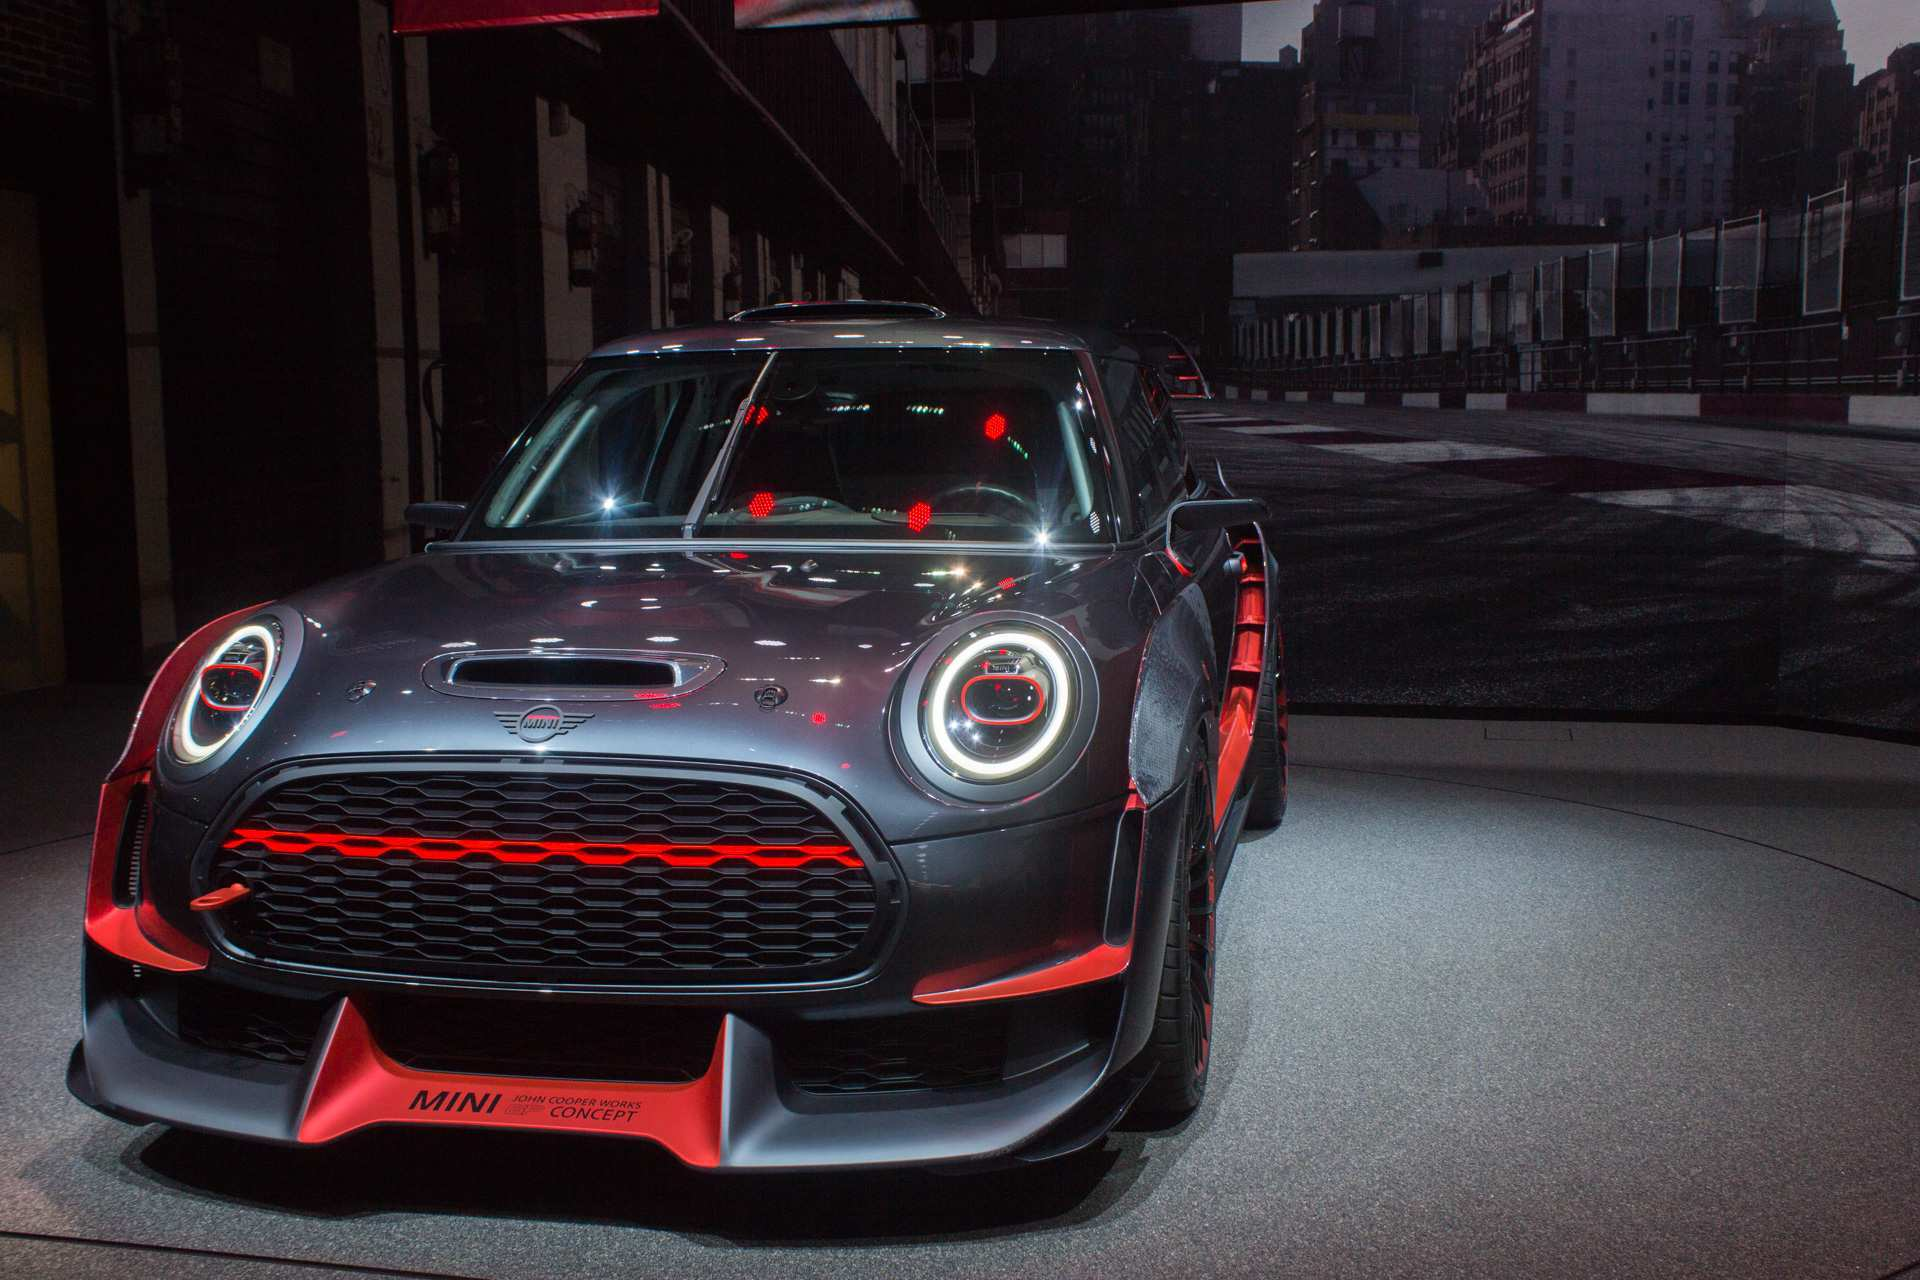 50 Concept of 2020 Mini Cooper Jcw Redesign for 2020 Mini Cooper Jcw